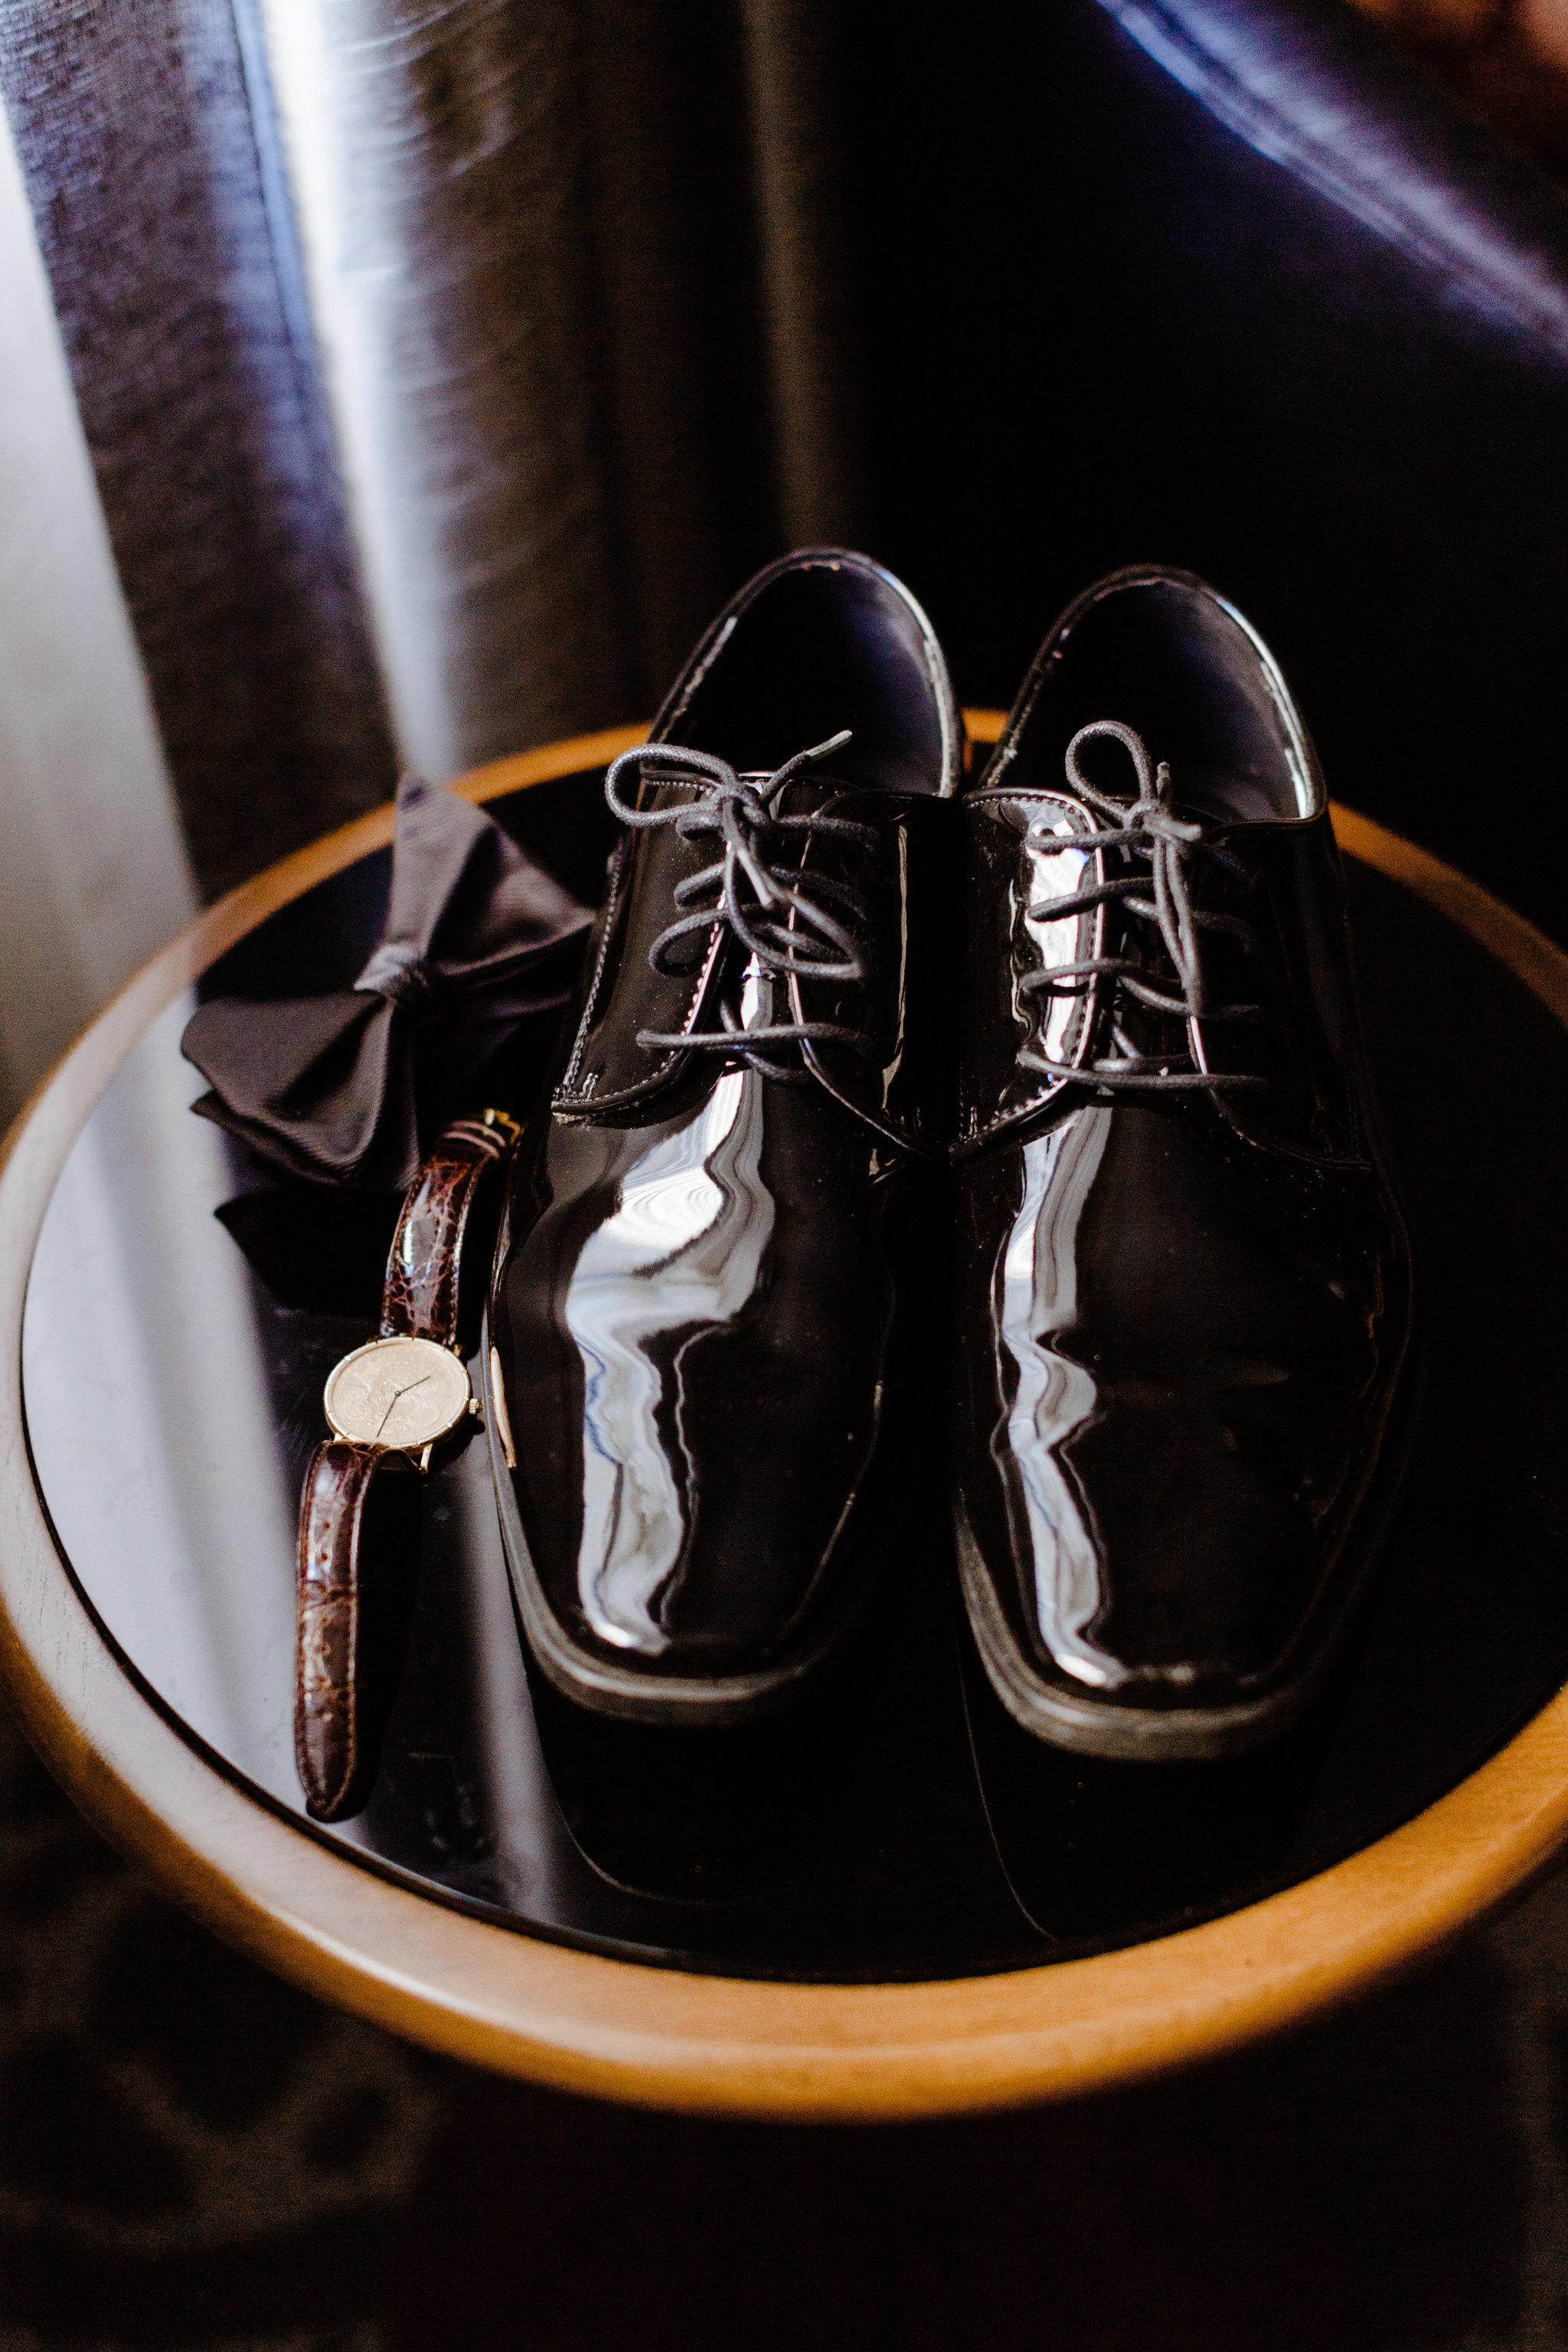 Groom details before a wedding - bowtie, shoes, watch